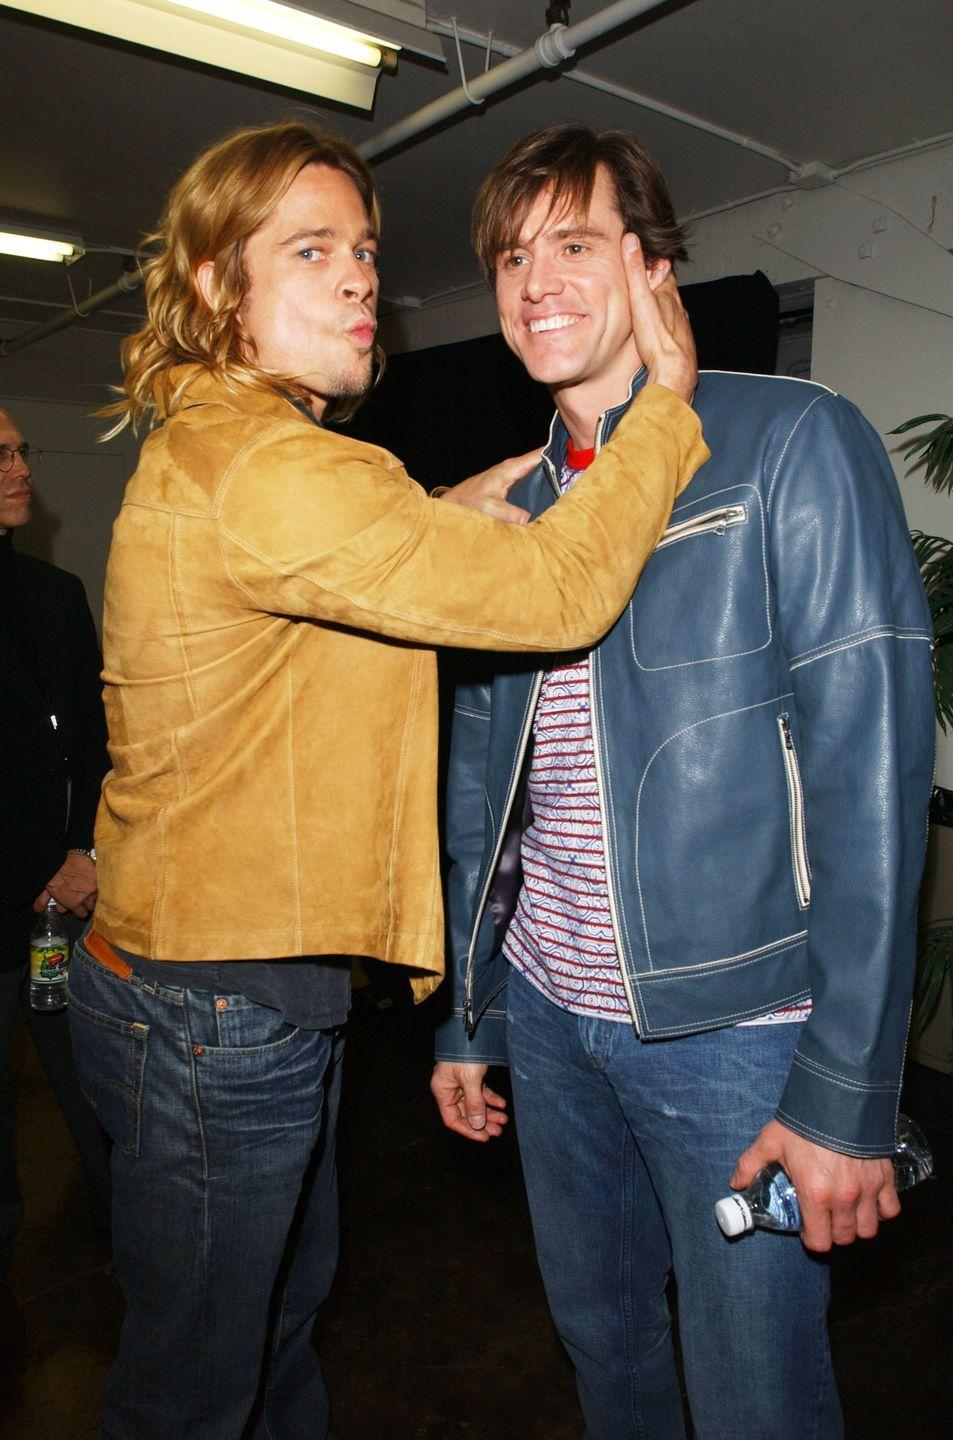 "<p>Pitt poses with Jim Carrey backstage at the Nickelodeon Kids' Choice Awards in April 2003. Carrey said on <a href=""https://www.smh.com.au/entertainment/celebrity/jim-carrey-blasts-tom-cruise-20091111-i89a.html"" rel=""nofollow noopener"" target=""_blank"" data-ylk=""slk:Chelsea Lately"" class=""link rapid-noclick-resp""><em>Chelsea Lately</em></a> in 2009 that Pitt ""can do no wrong.""</p>"